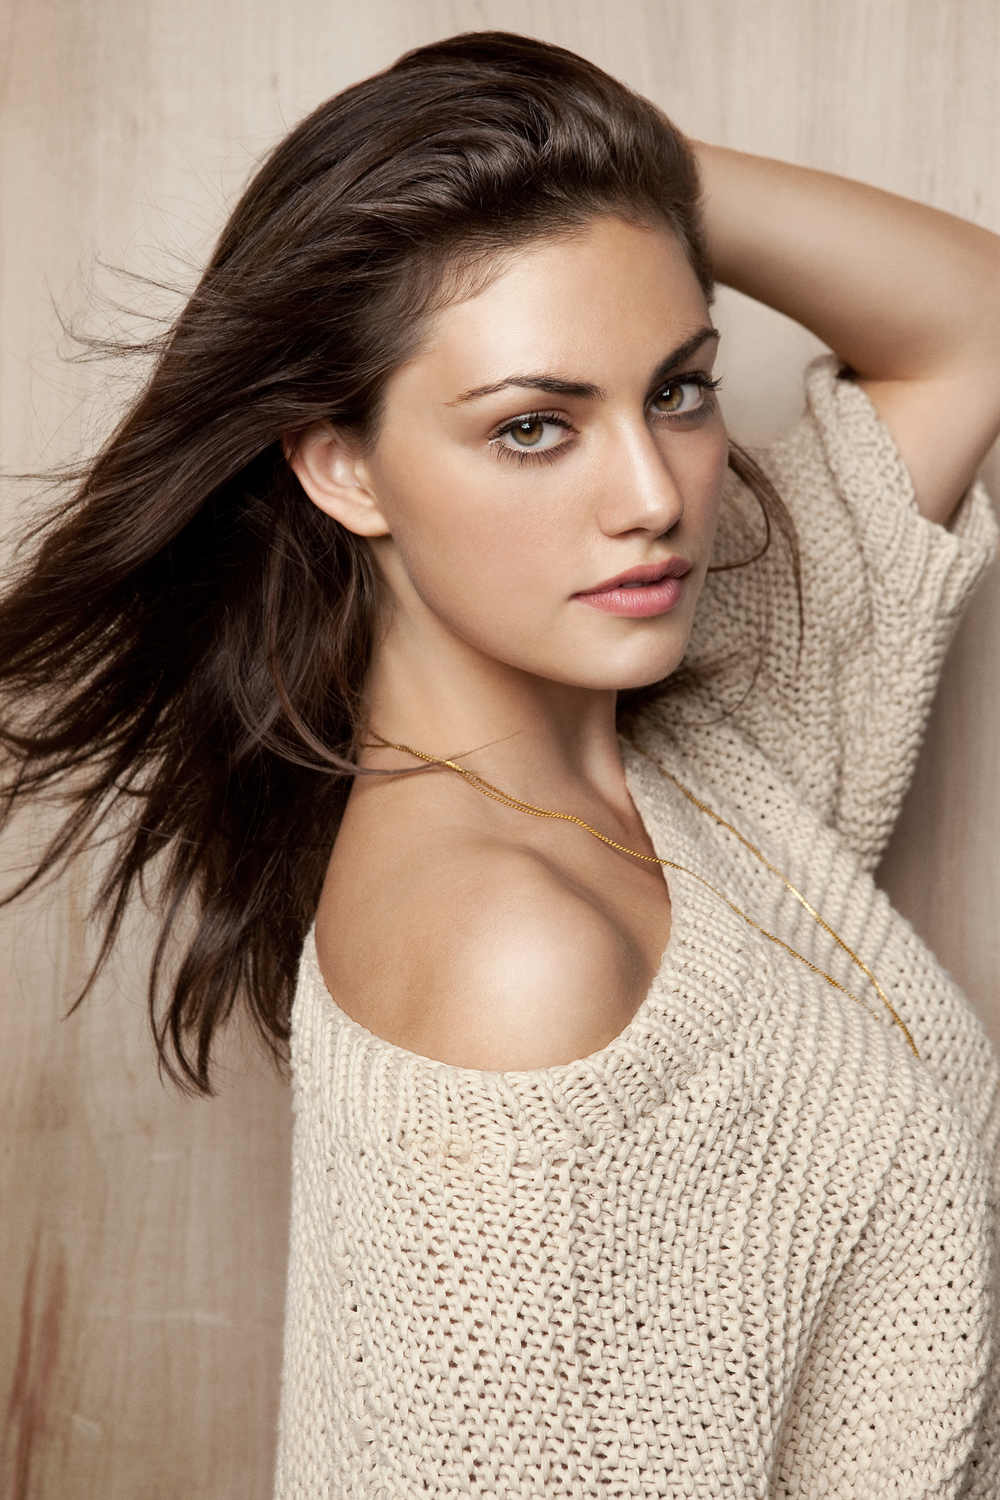 Images Phoebe Tonkin nudes (76 photos), Topless, Cleavage, Instagram, cameltoe 2017